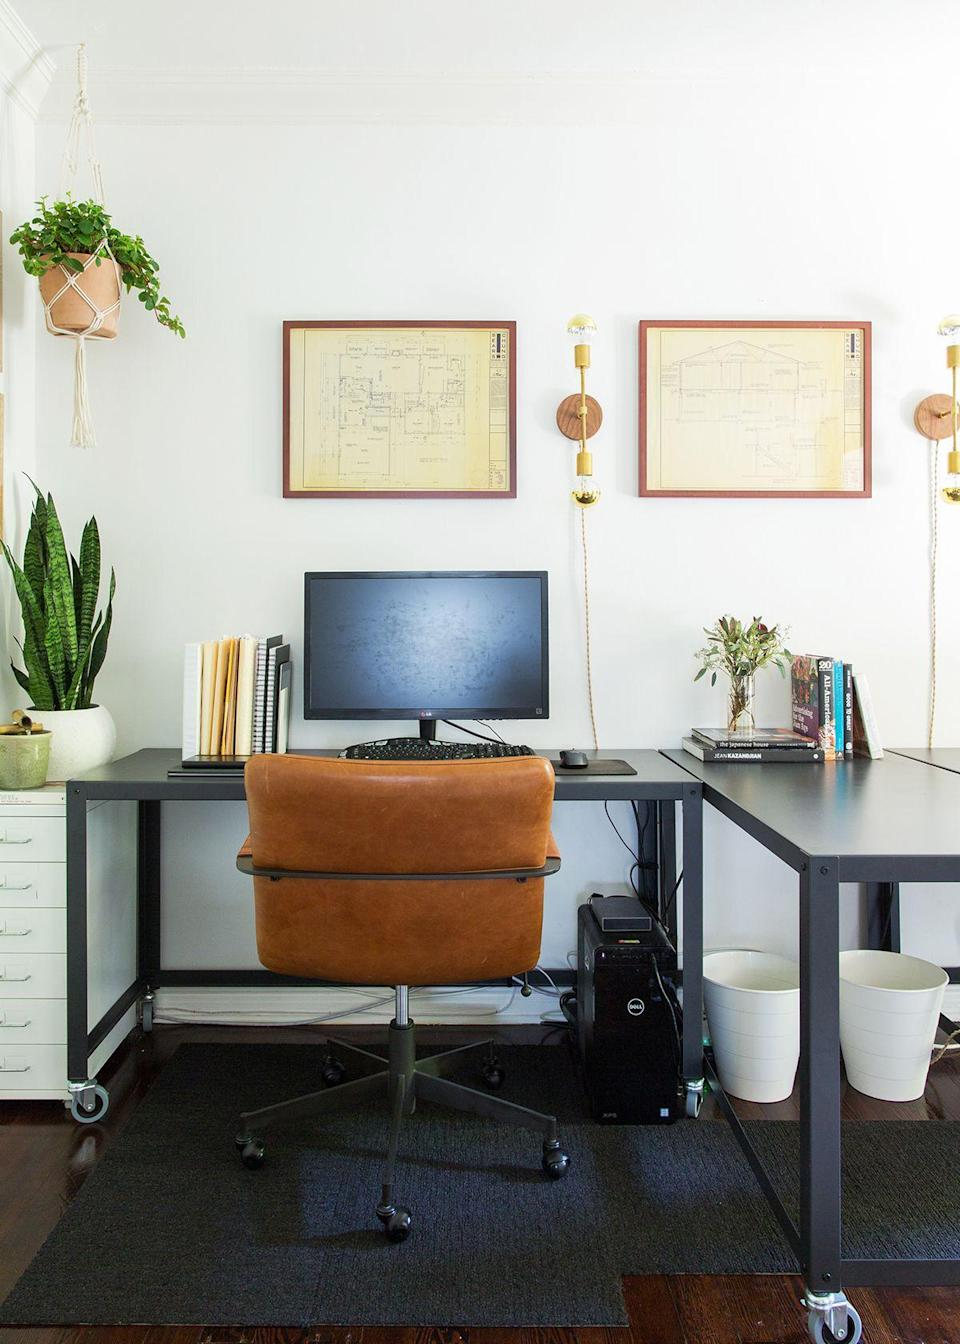 """Many apartment dwellers can relate to the designer's biggest challenge in furnishing the space: the size of the house. """"I work from home (when I'm not at my various project locations), so I really needed the space to work for my business needs,"""" Cheng explains. """"But at the same time, I wanted it to feel like a sanctuary and an inviting place to entertain friends."""" It's a hefty checklist for a small place, as the designer notes, but we'd say she nailed it."""